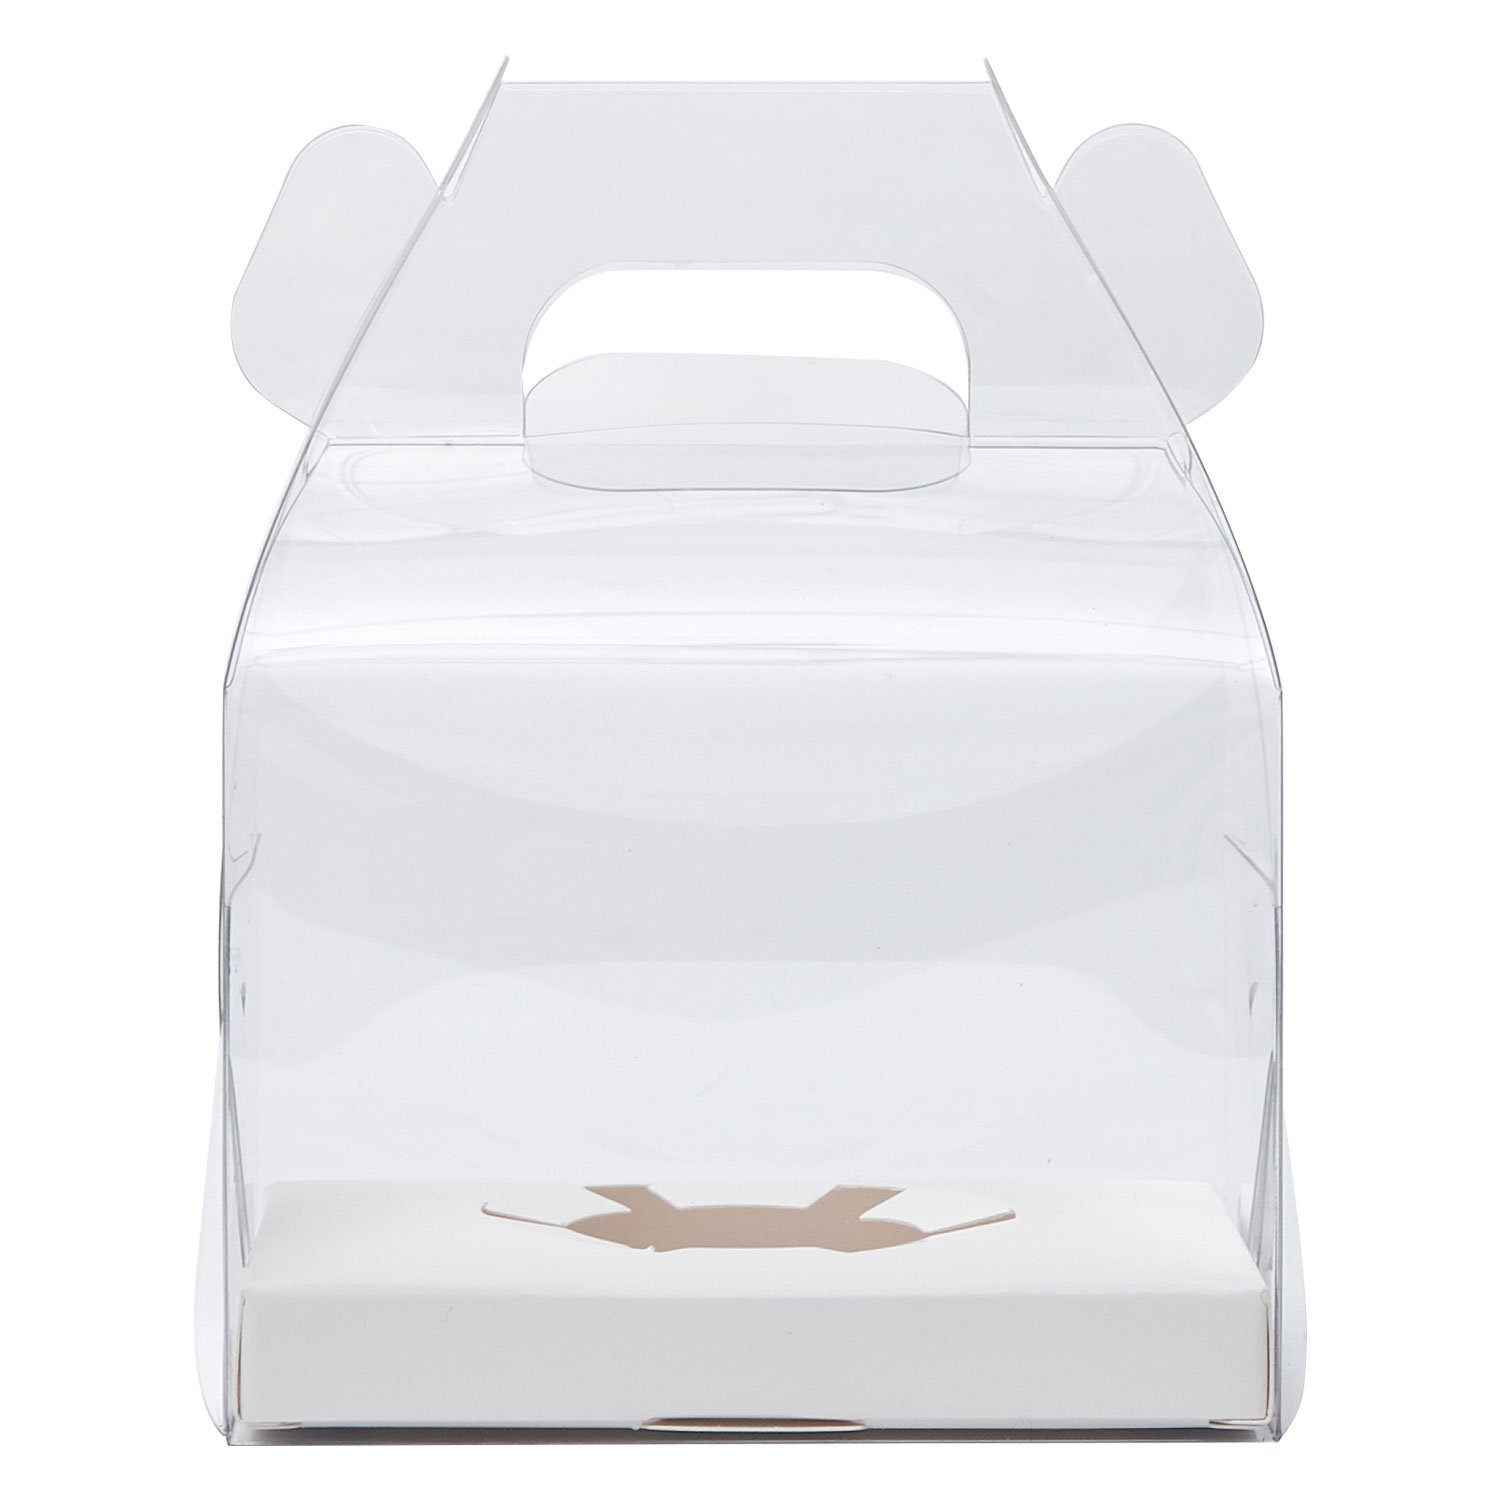 Yotruth Clear Single Cupcake Boxes With Handle and White Insert 20 Pack For Sweet Treat Box by yotruth (Image #1)